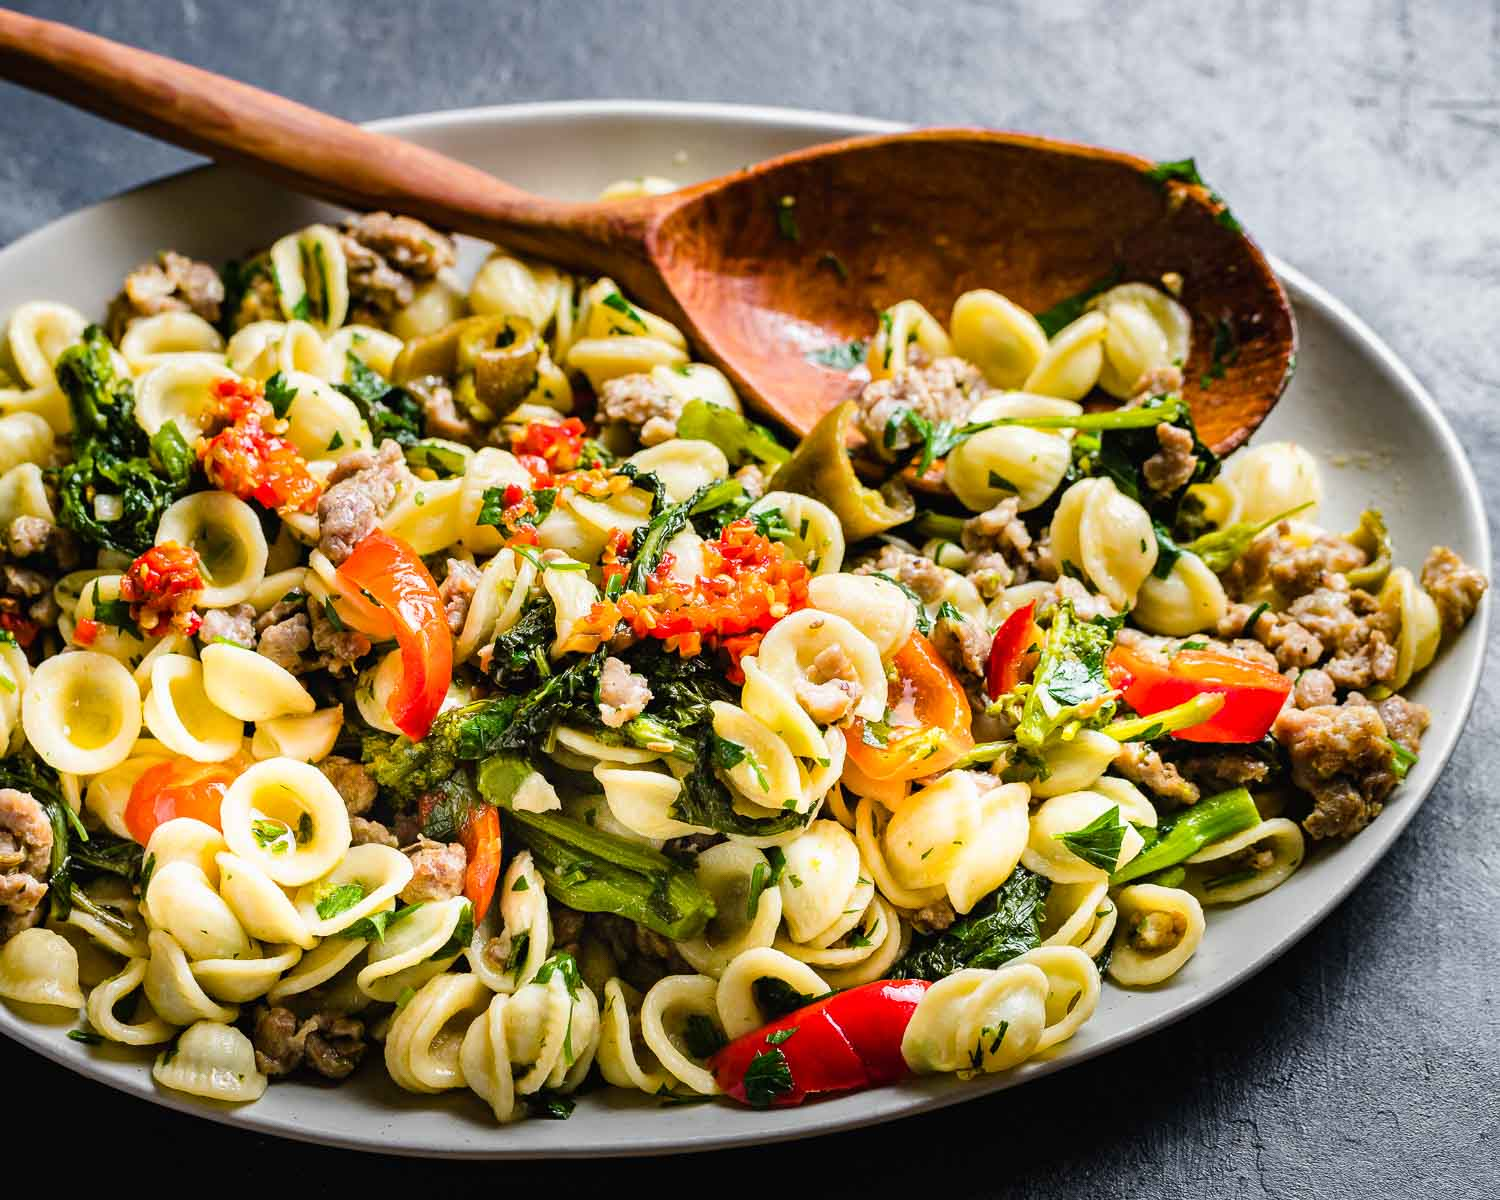 Platter of orecchiette, sausage, broccoli rabe, and cherry peppers.